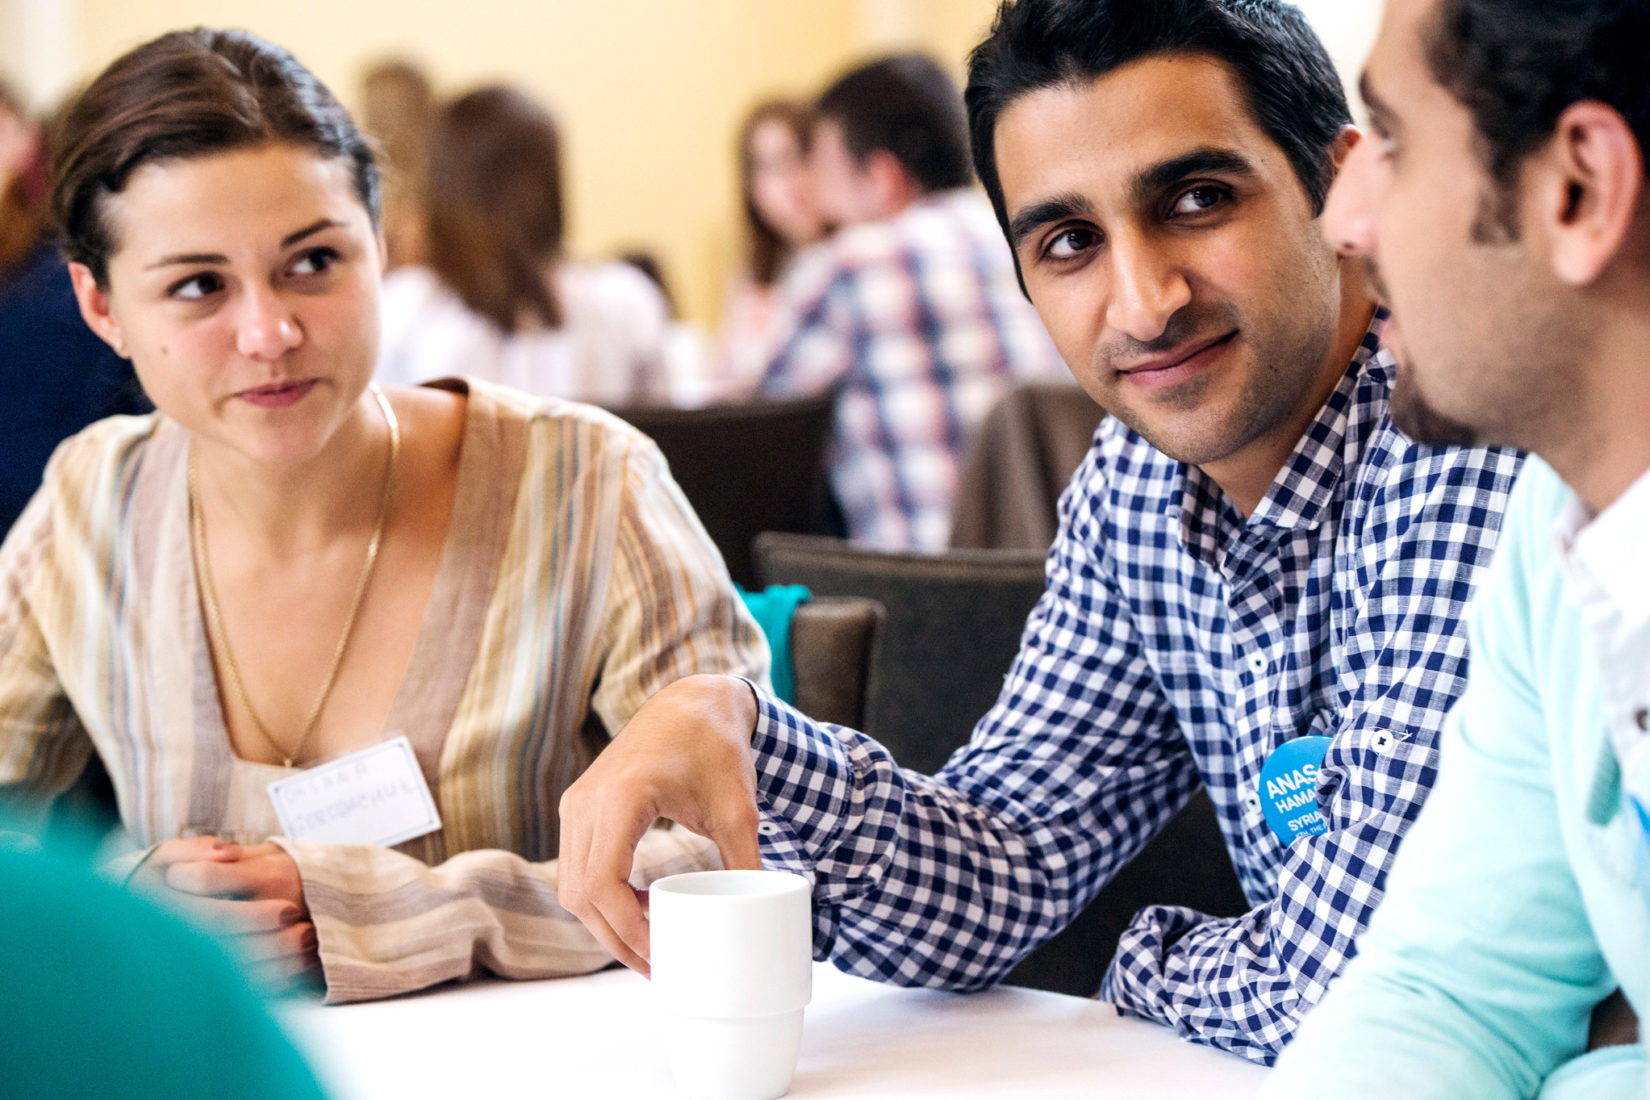 Swedish Institute's Visby Programme Scholarships for PhD studies & Postdoctoral research